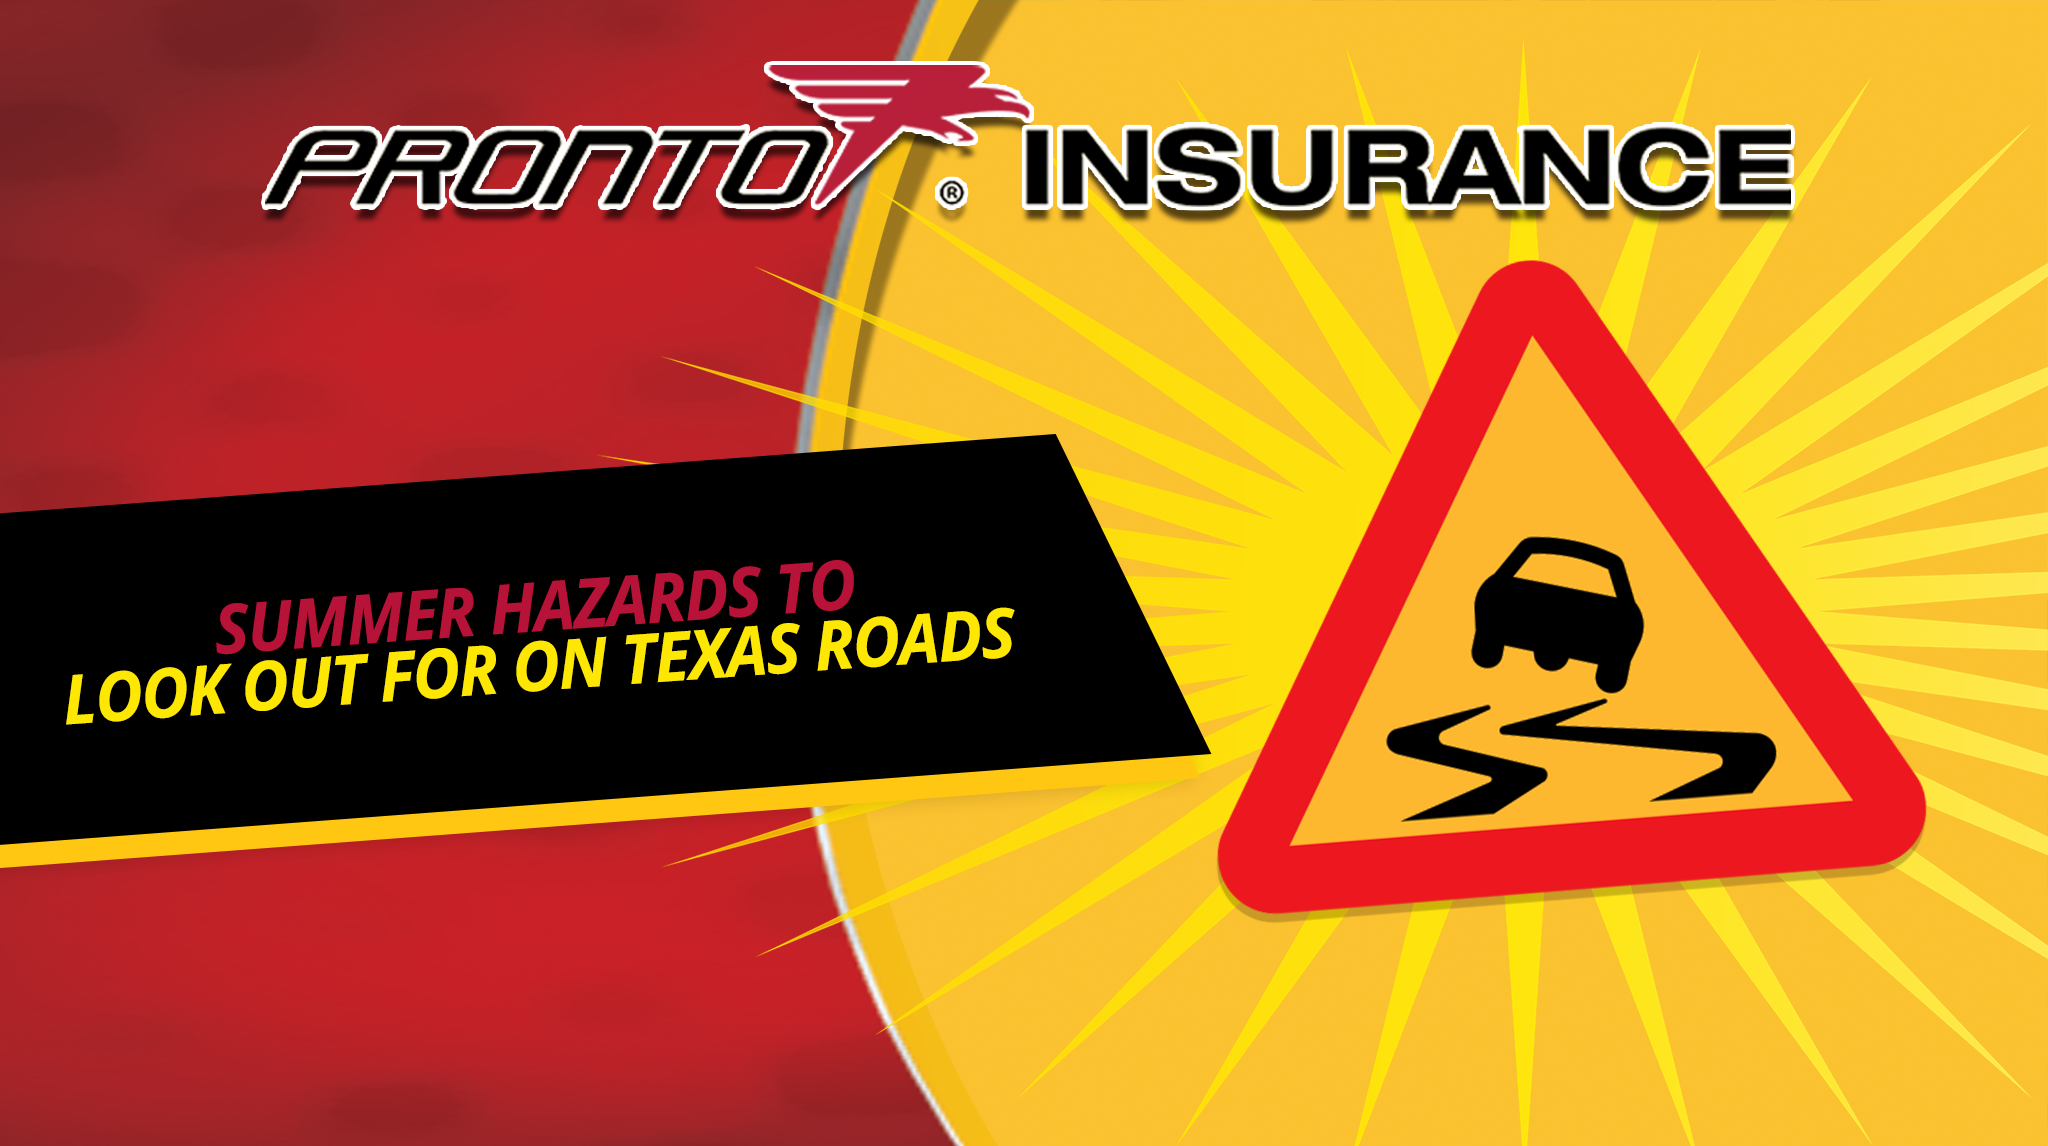 Summer Hazards to Look Out for on Texas Roads